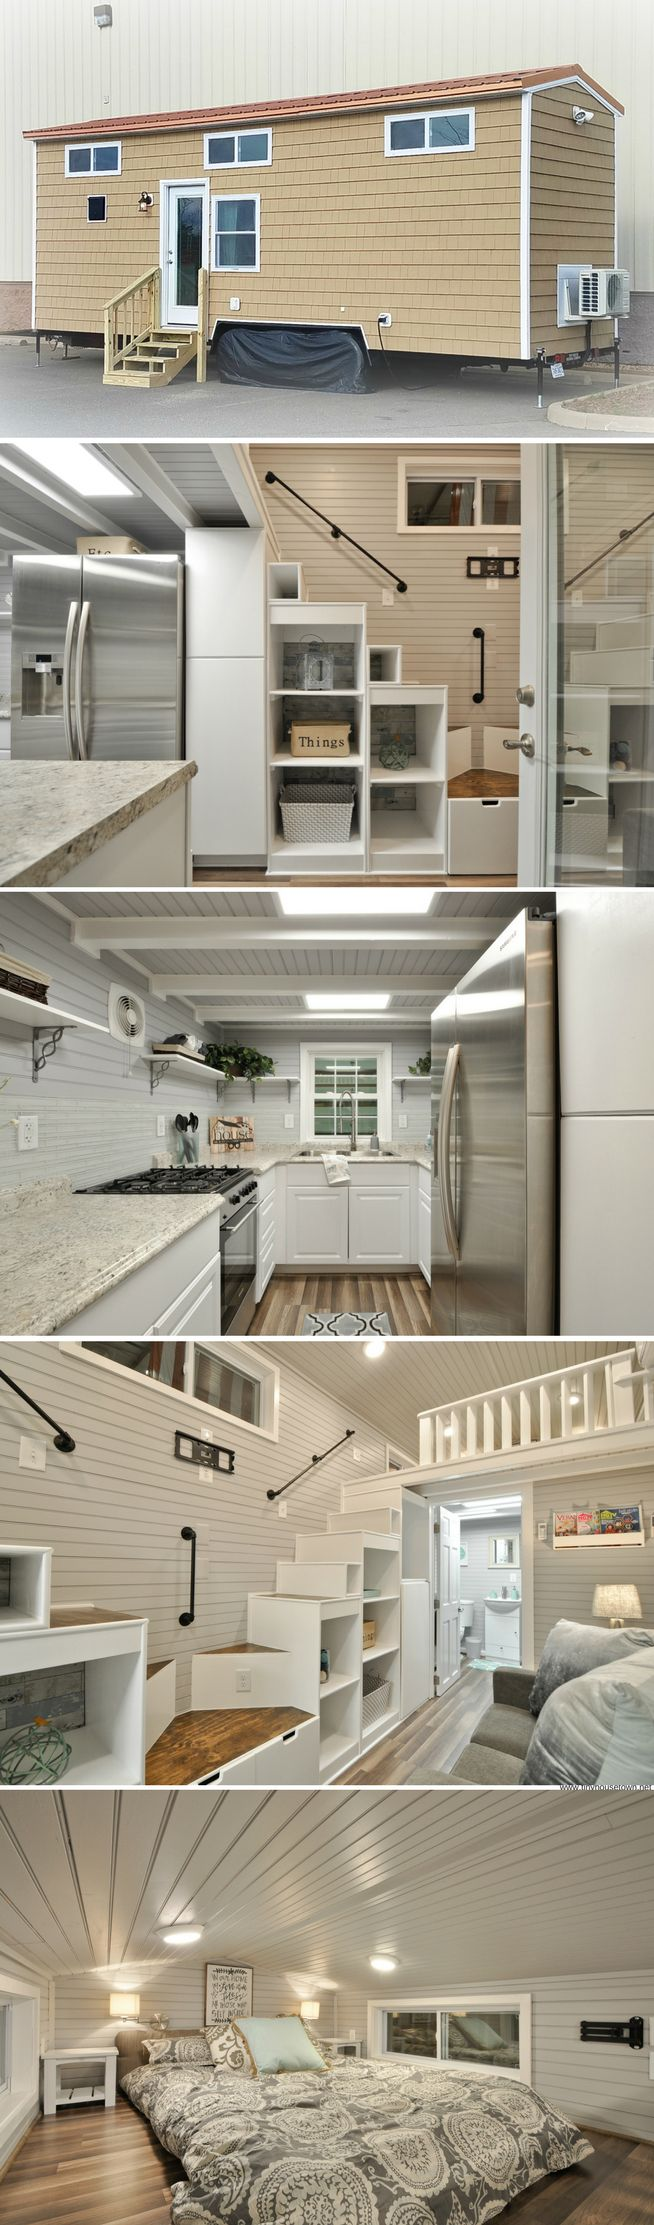 best 25+ tiny house plans ideas on pinterest | small home plans